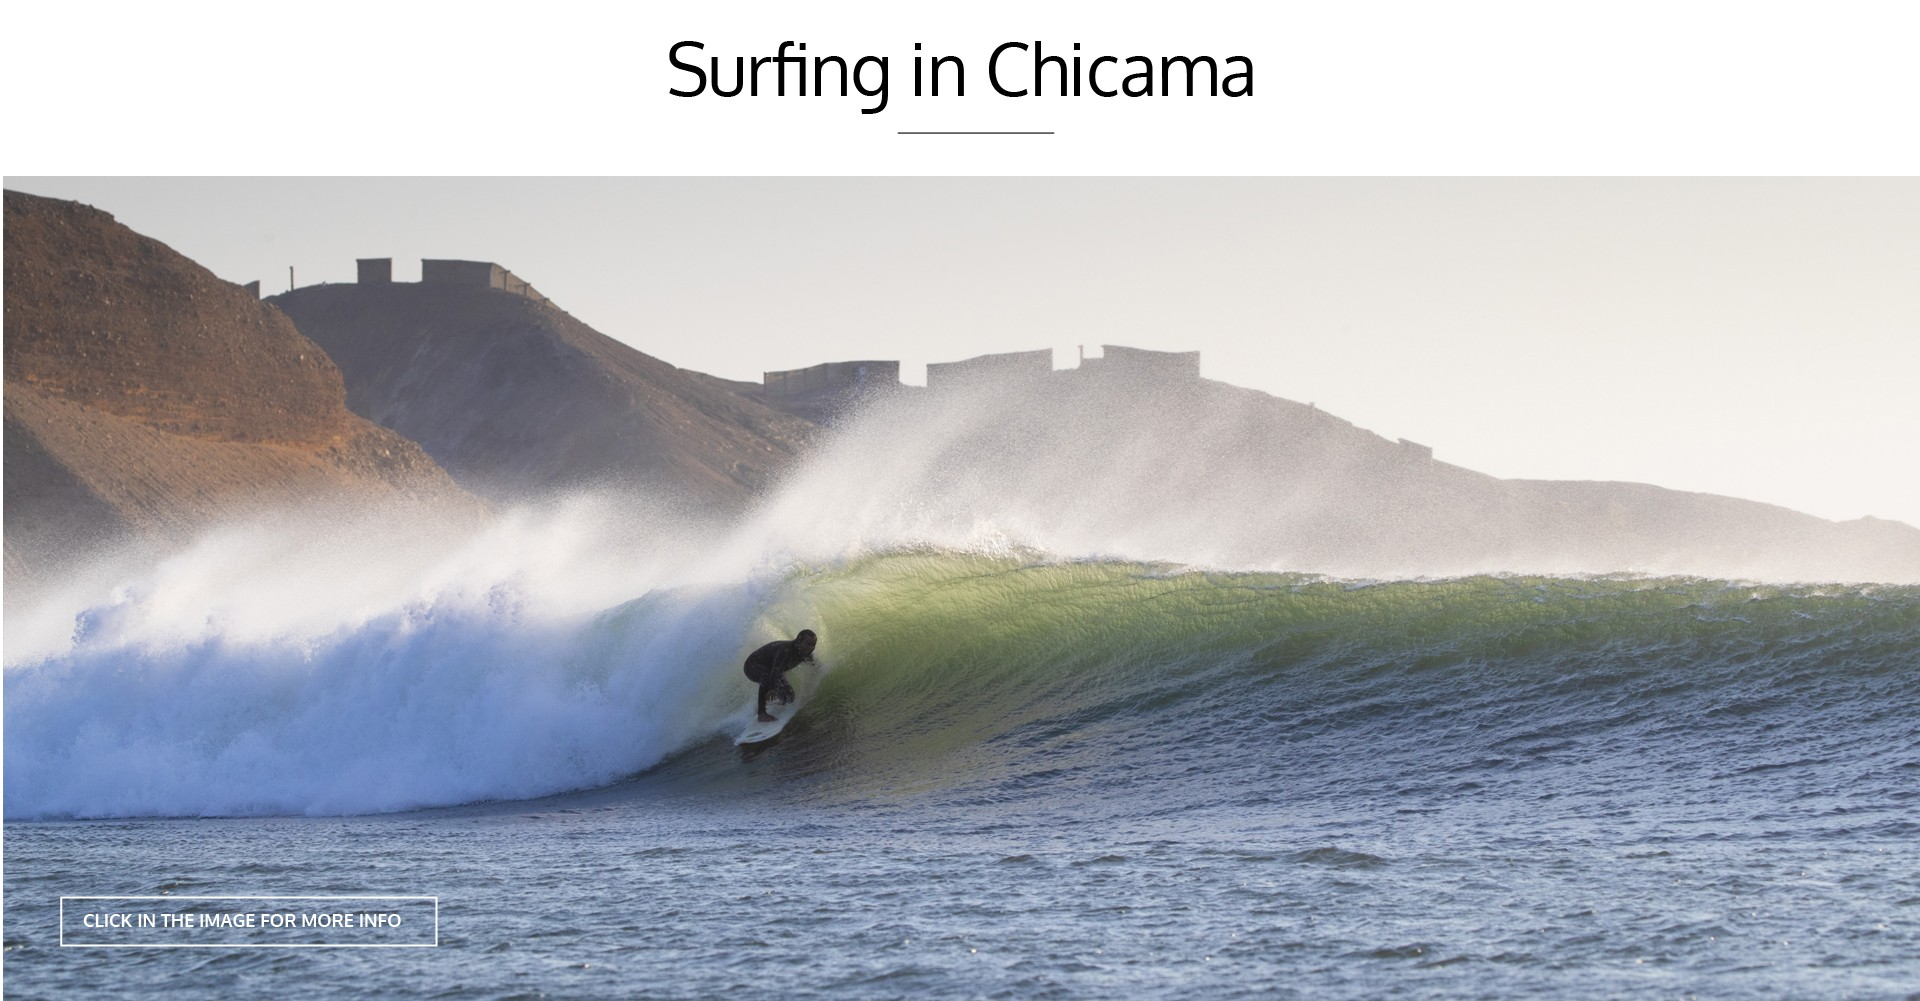 SURFING IN CHICAMA